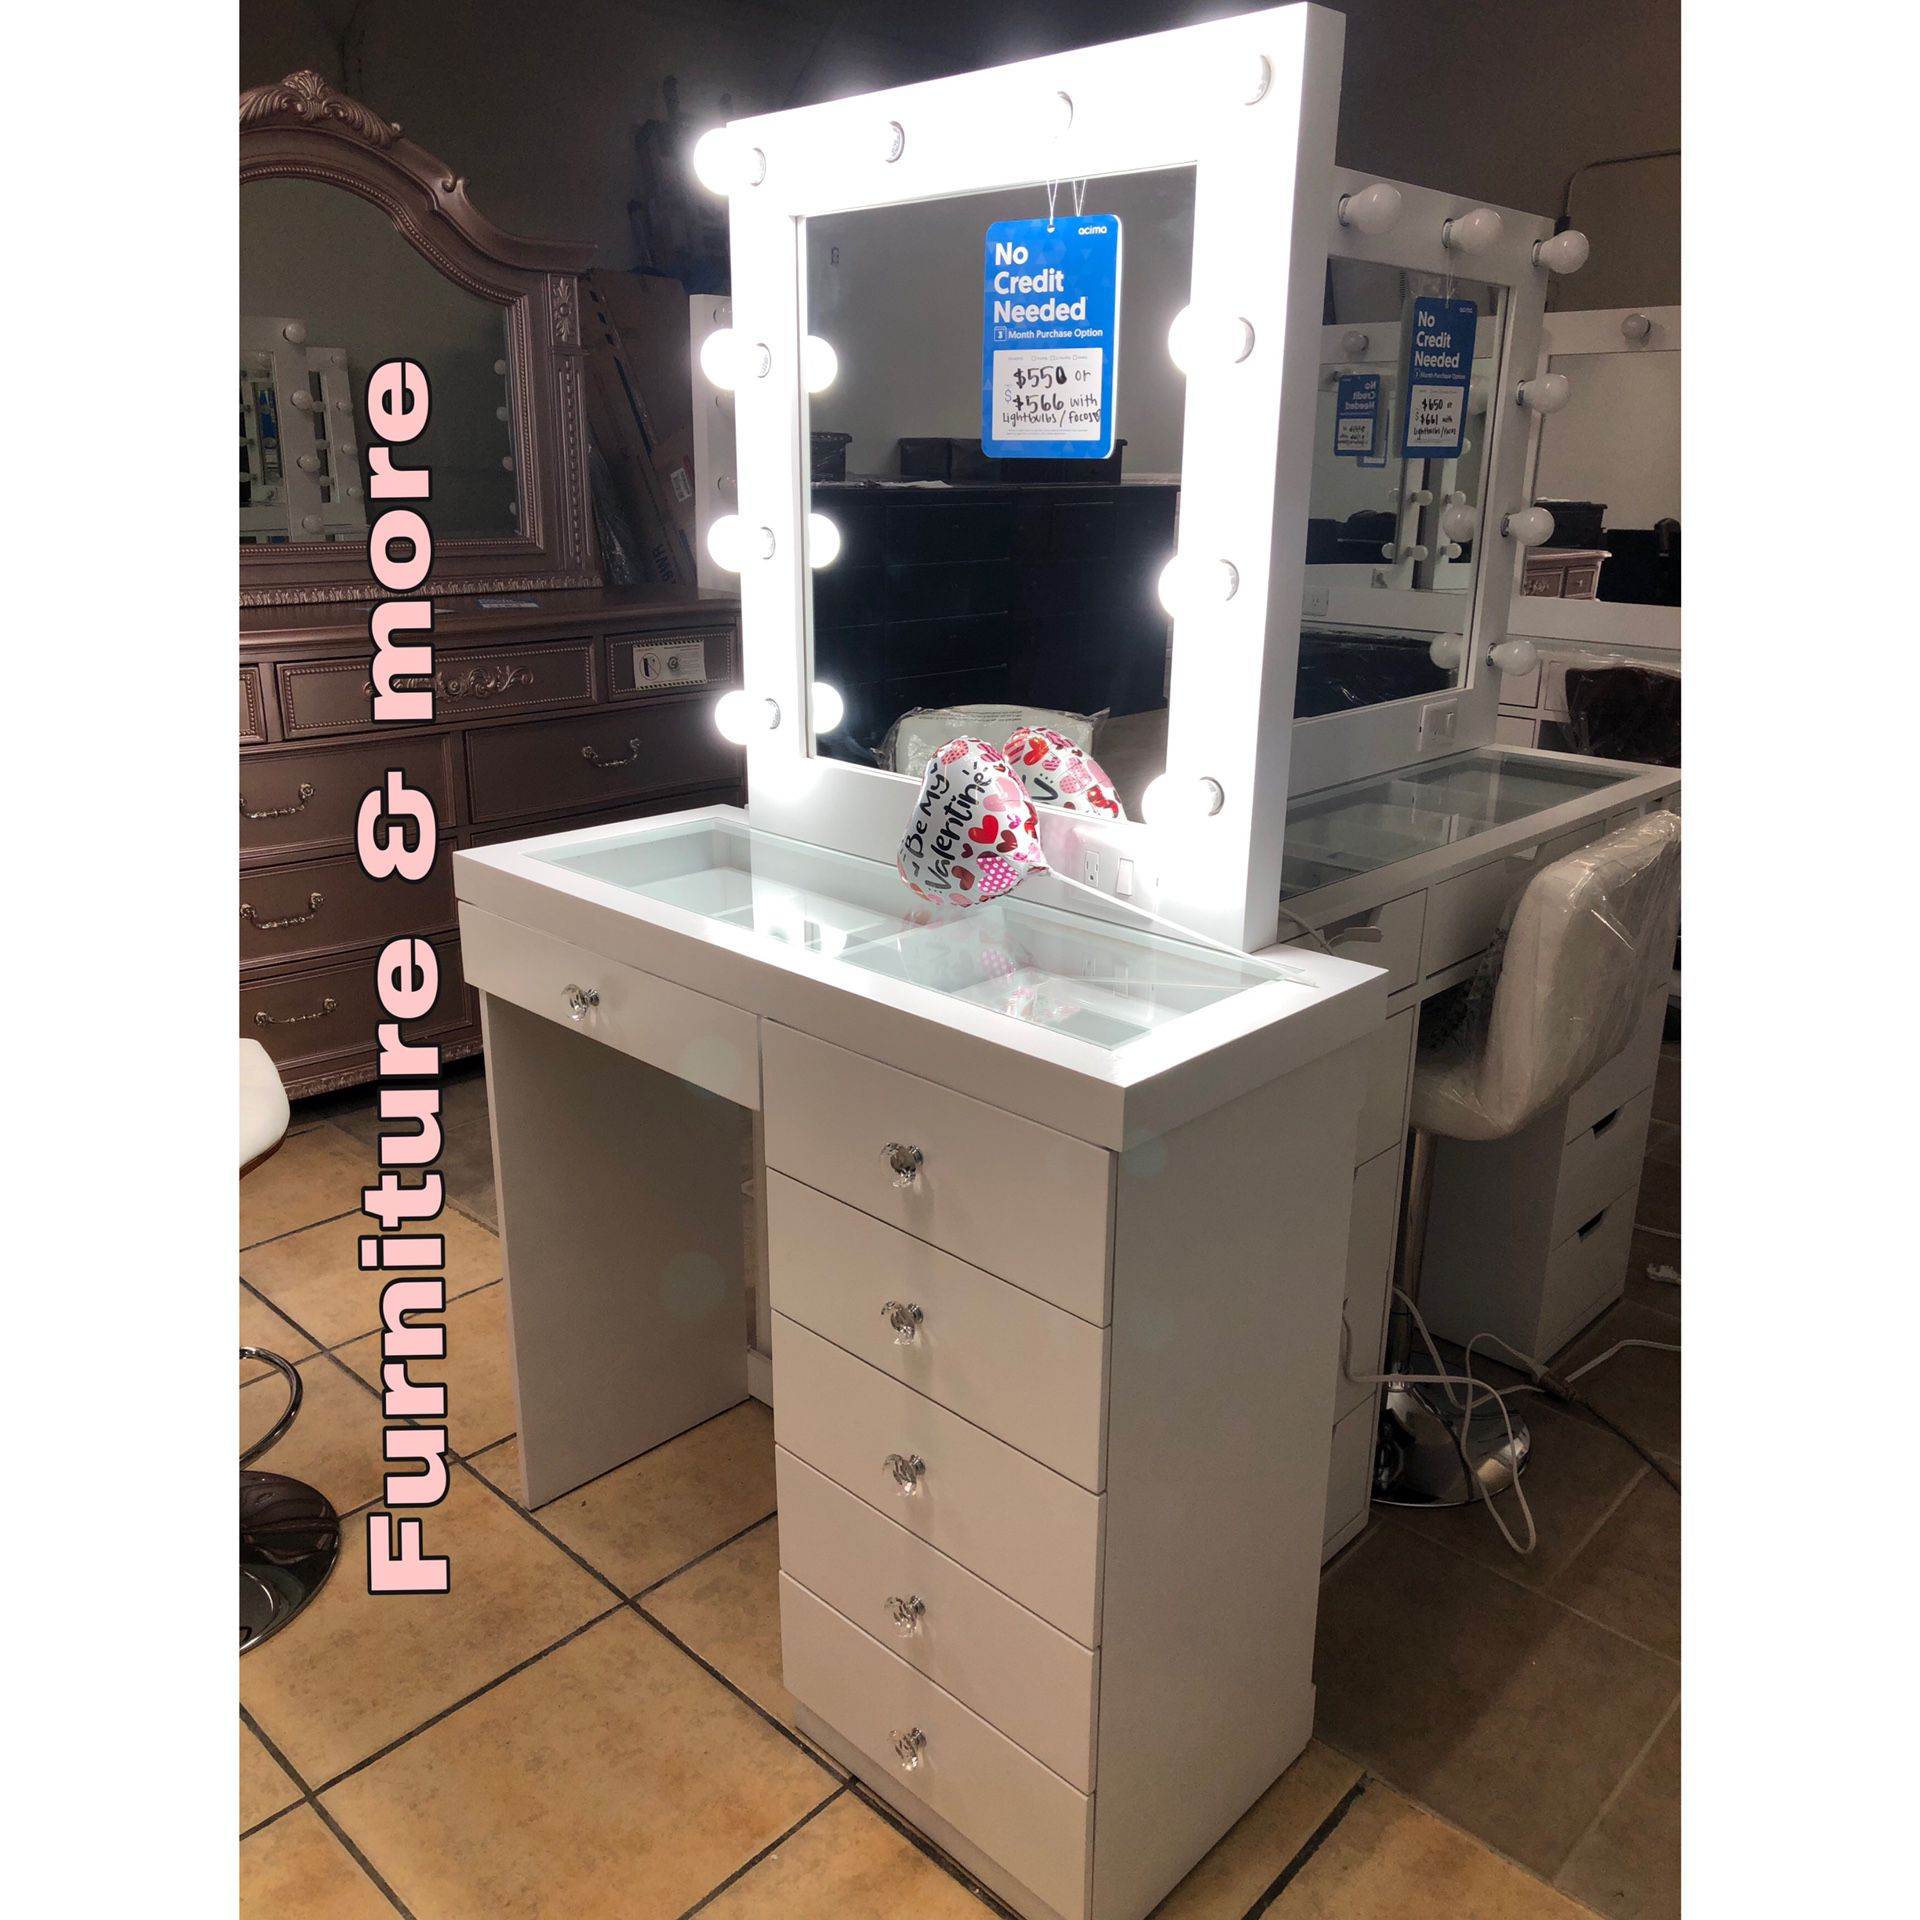 Brand New Vanity 😍👍🏻 Lightbulbs & Chair Sold Separate !! Qualify To Buy Now & Pay Later No credit Needed ☎️